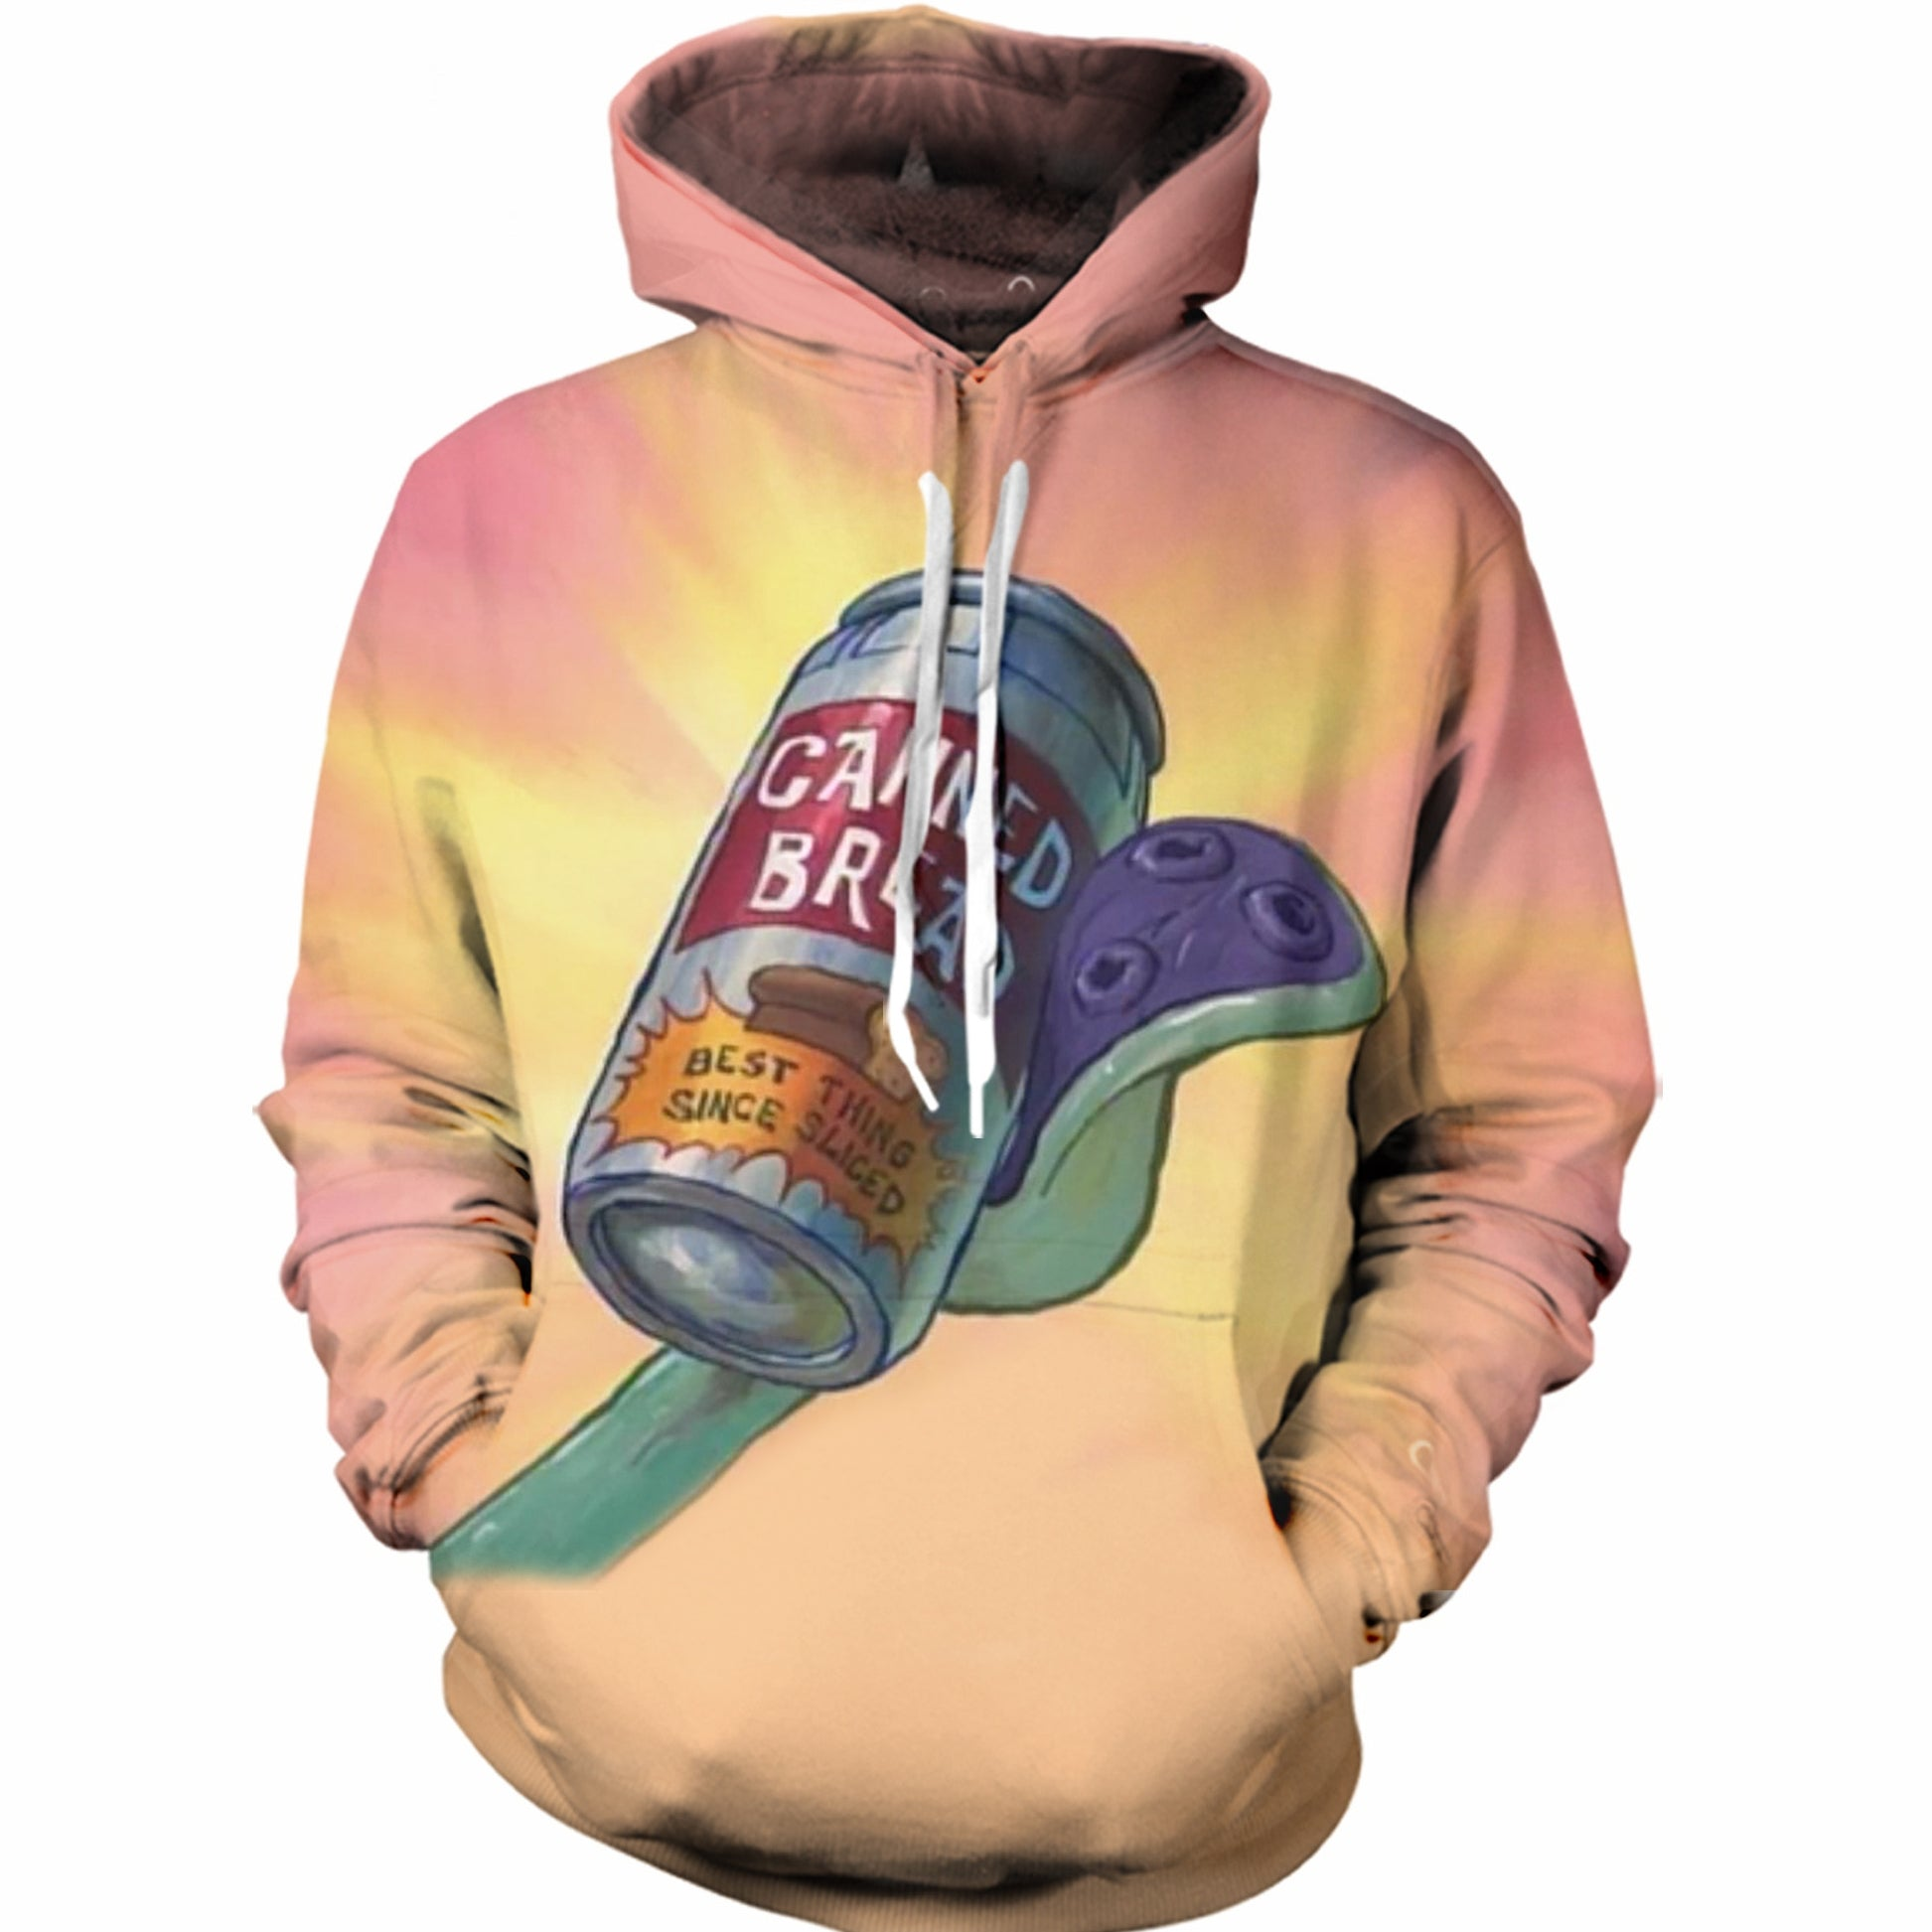 Canned Bread Hoodie